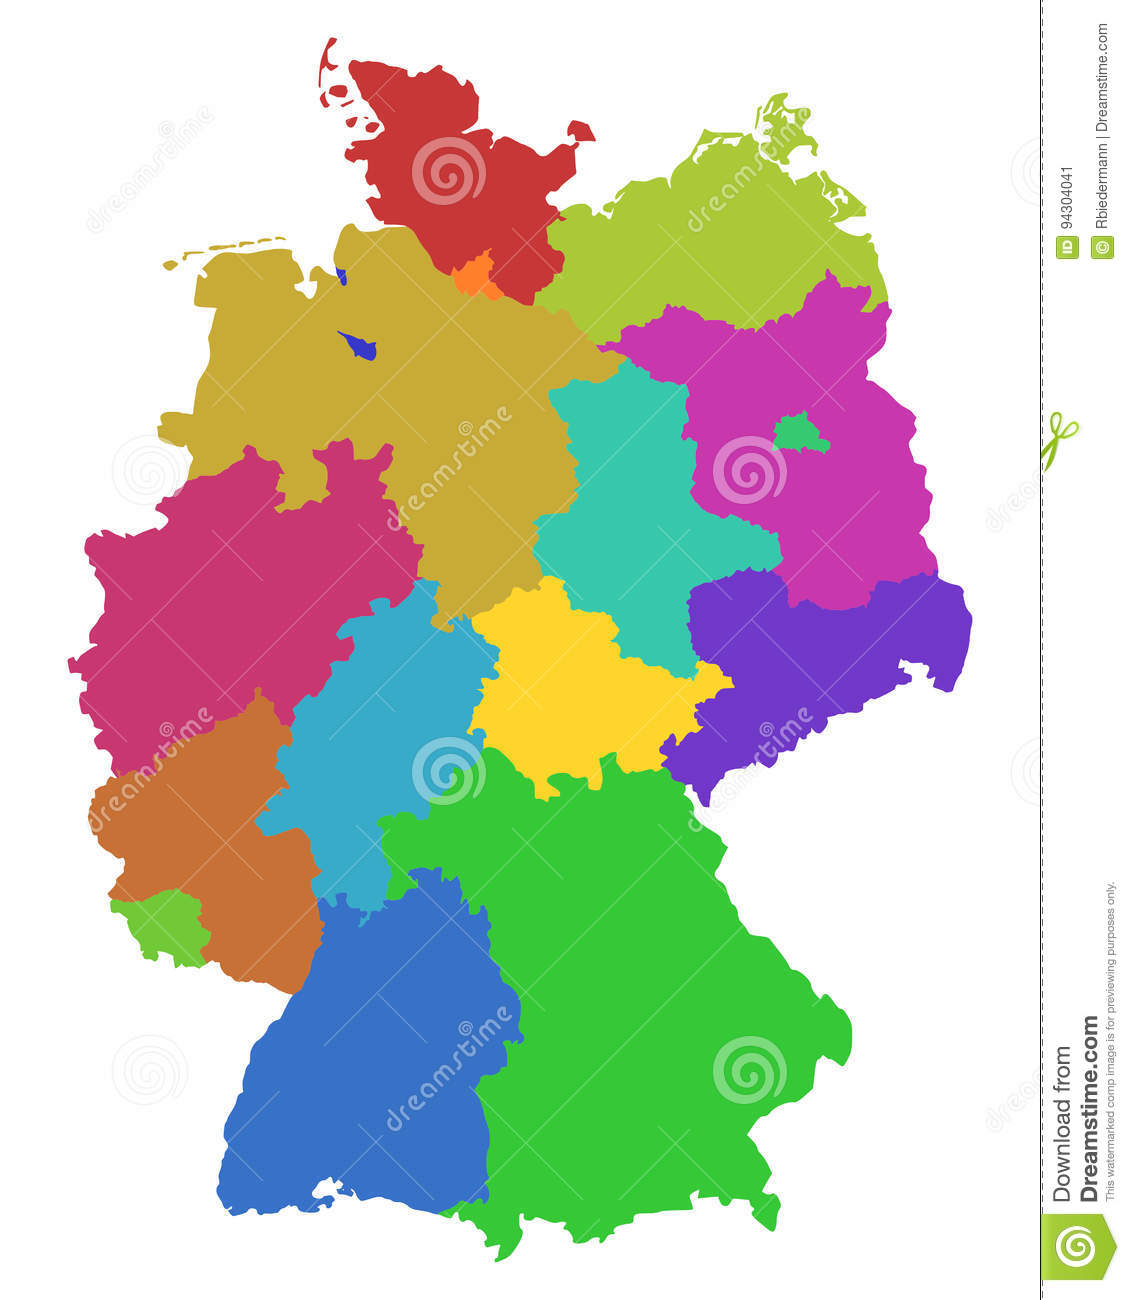 Map Of Germany With States.Map Of Germany Stock Vector Illustration Of States Thuringia